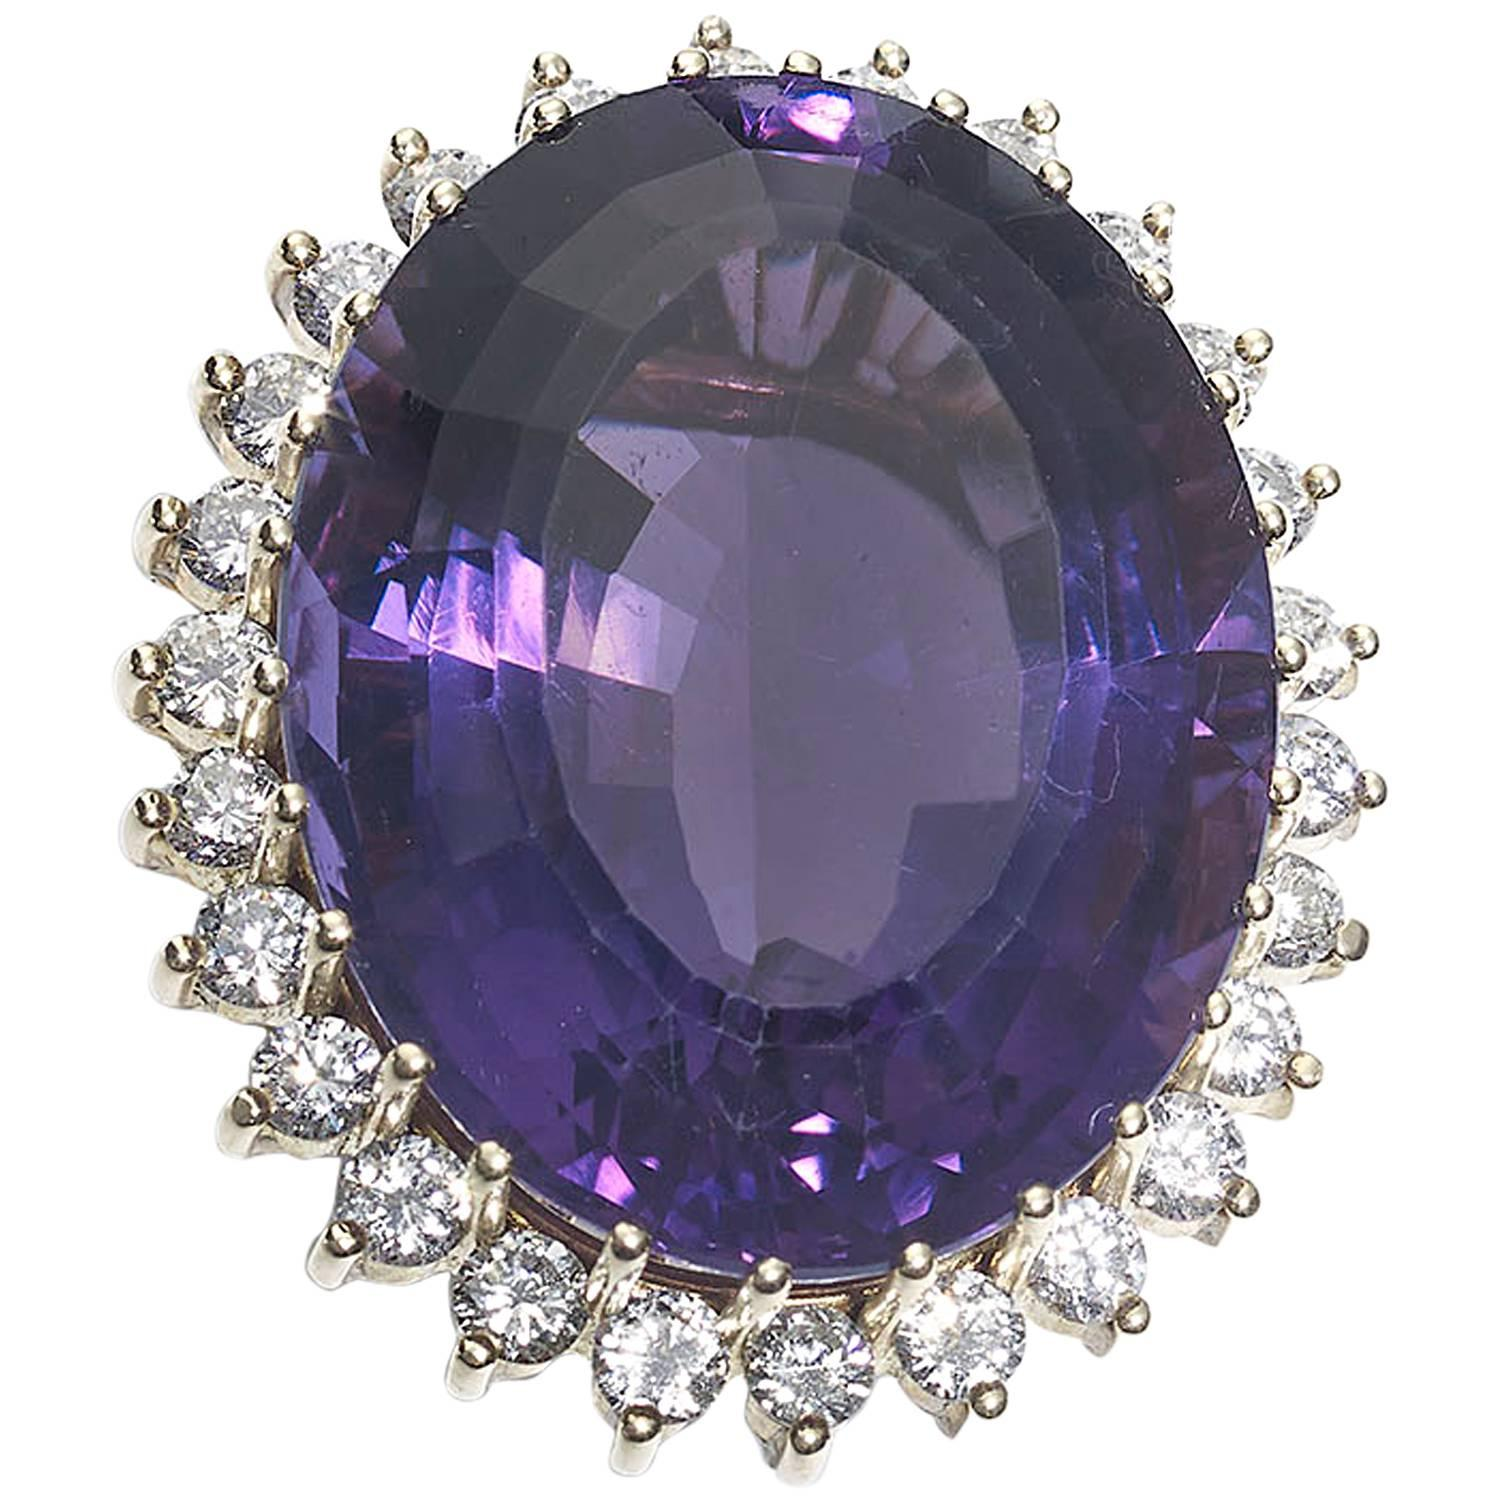 Search For Flights Delightful Round 7mm Top Blue Violet Tanzanite W Cz 925 Sterling Silver Ring 7 Large Assortment Jewelry & Watches